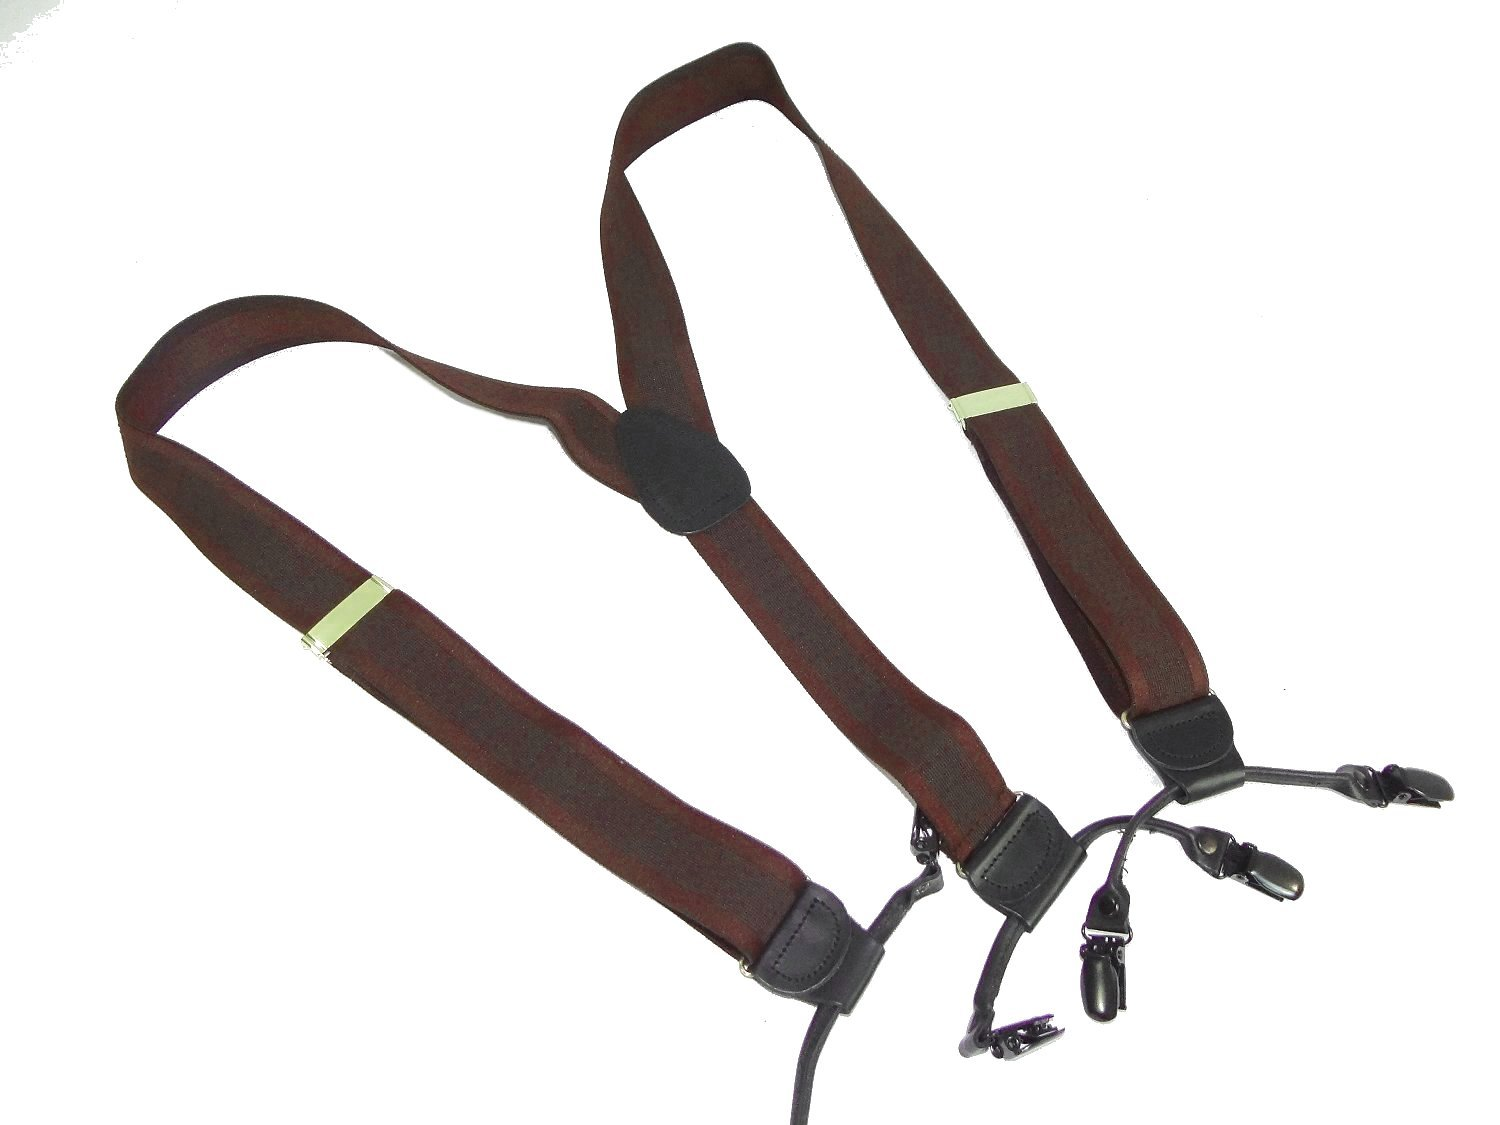 Hold-Up Brand Cordovan Jacquard Dual-clip Men's Y-back Suspenders with Patented no-slip clips